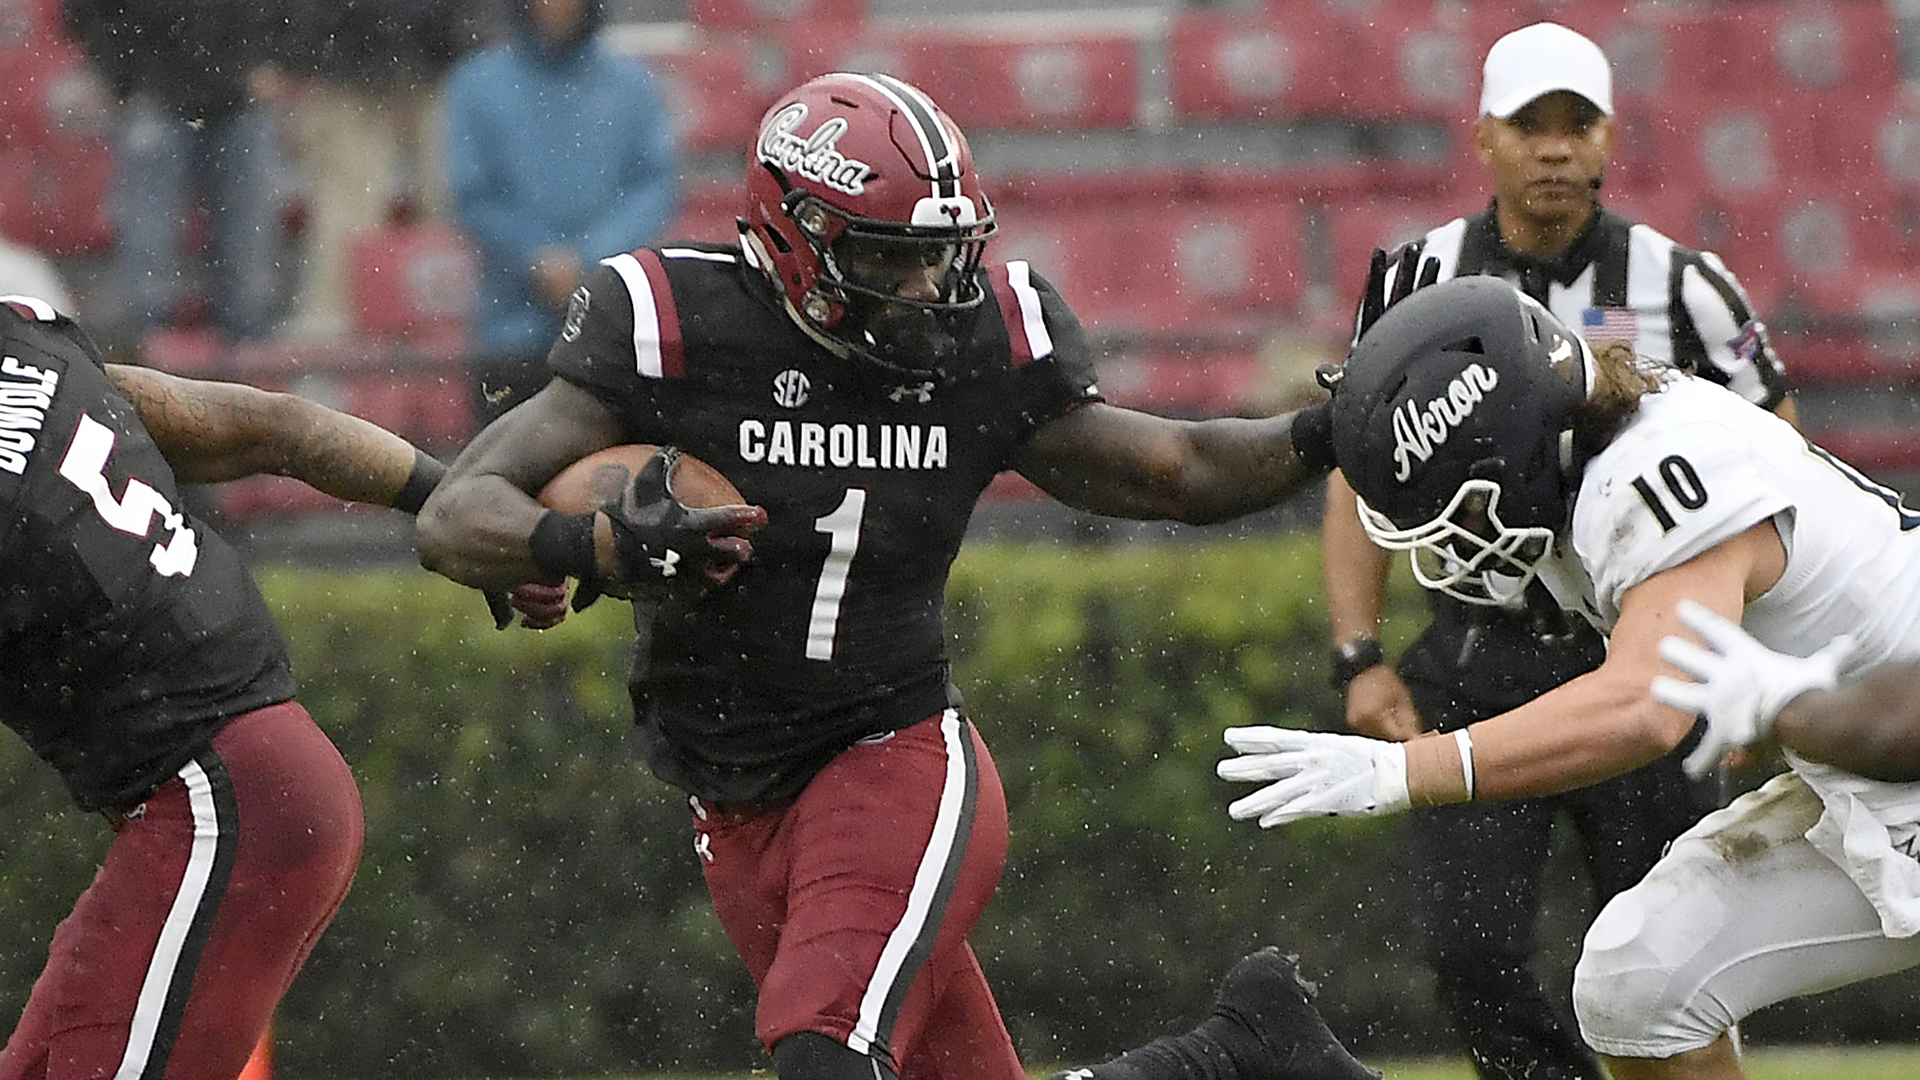 South Carolina Beats Akron 28-3